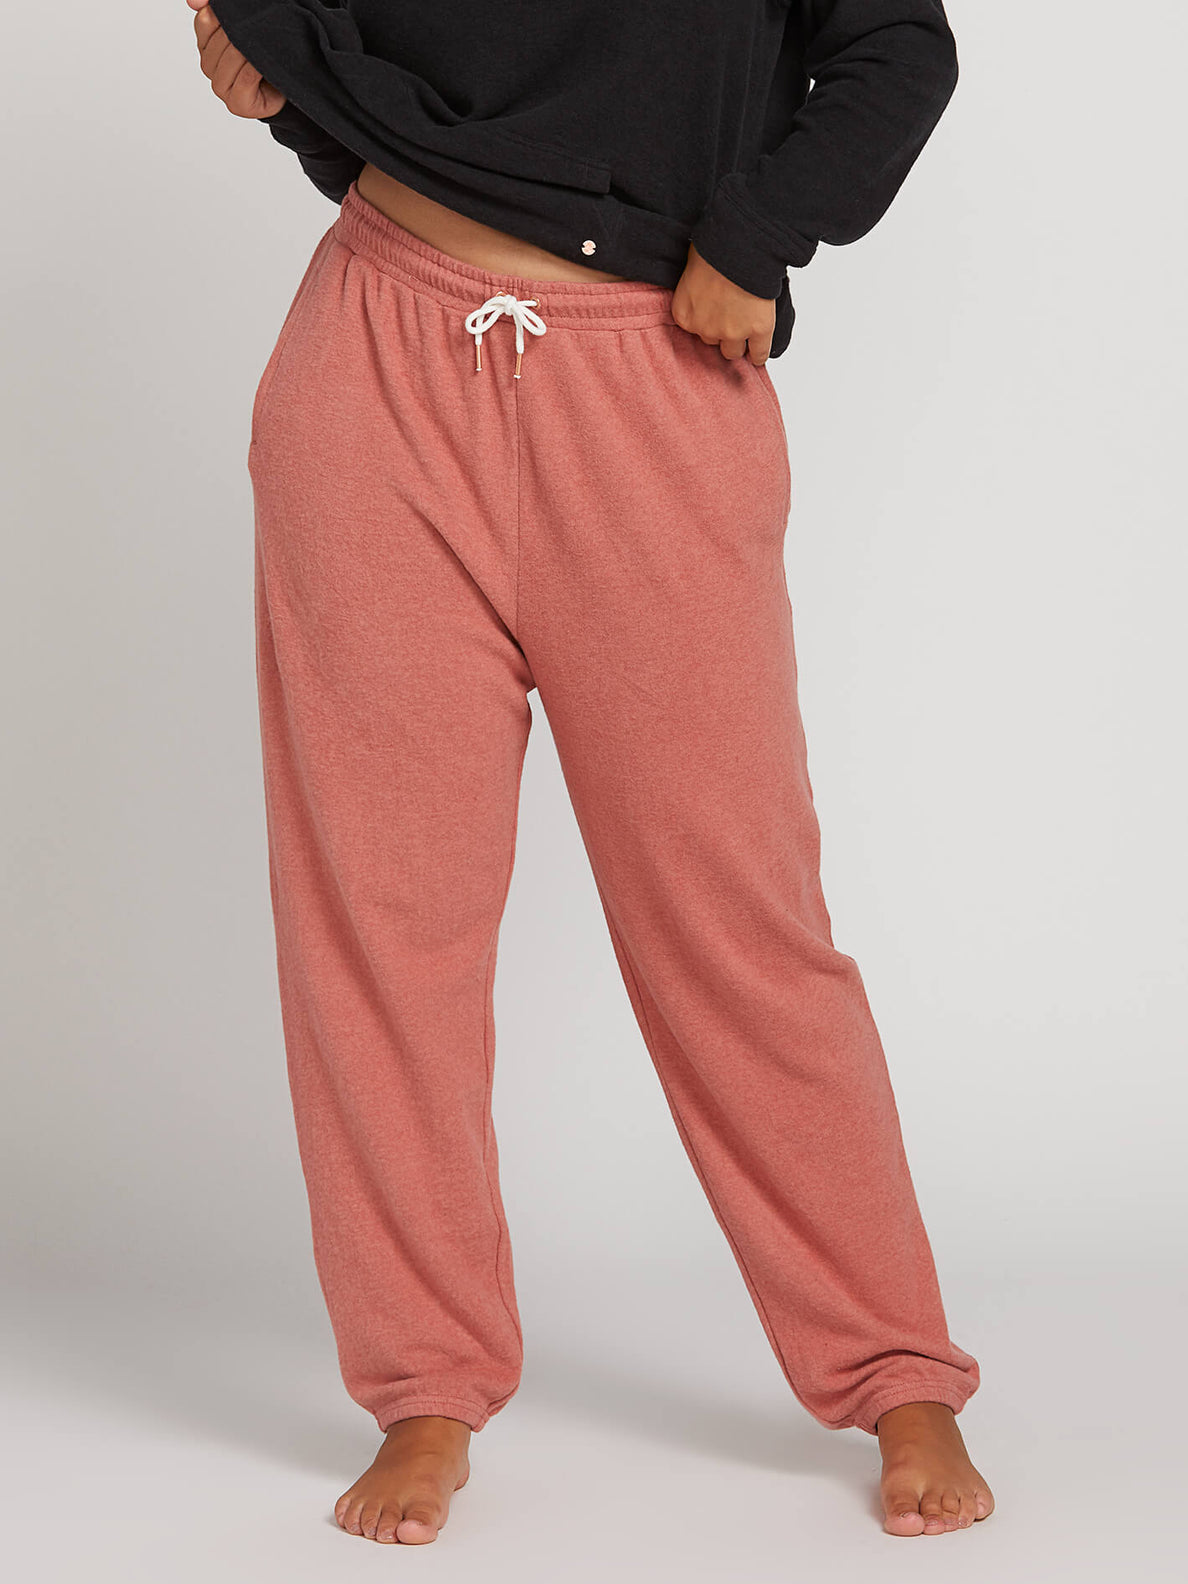 Lived In Lounge Fleece Pants In Mauve, Alternate Plus Size View